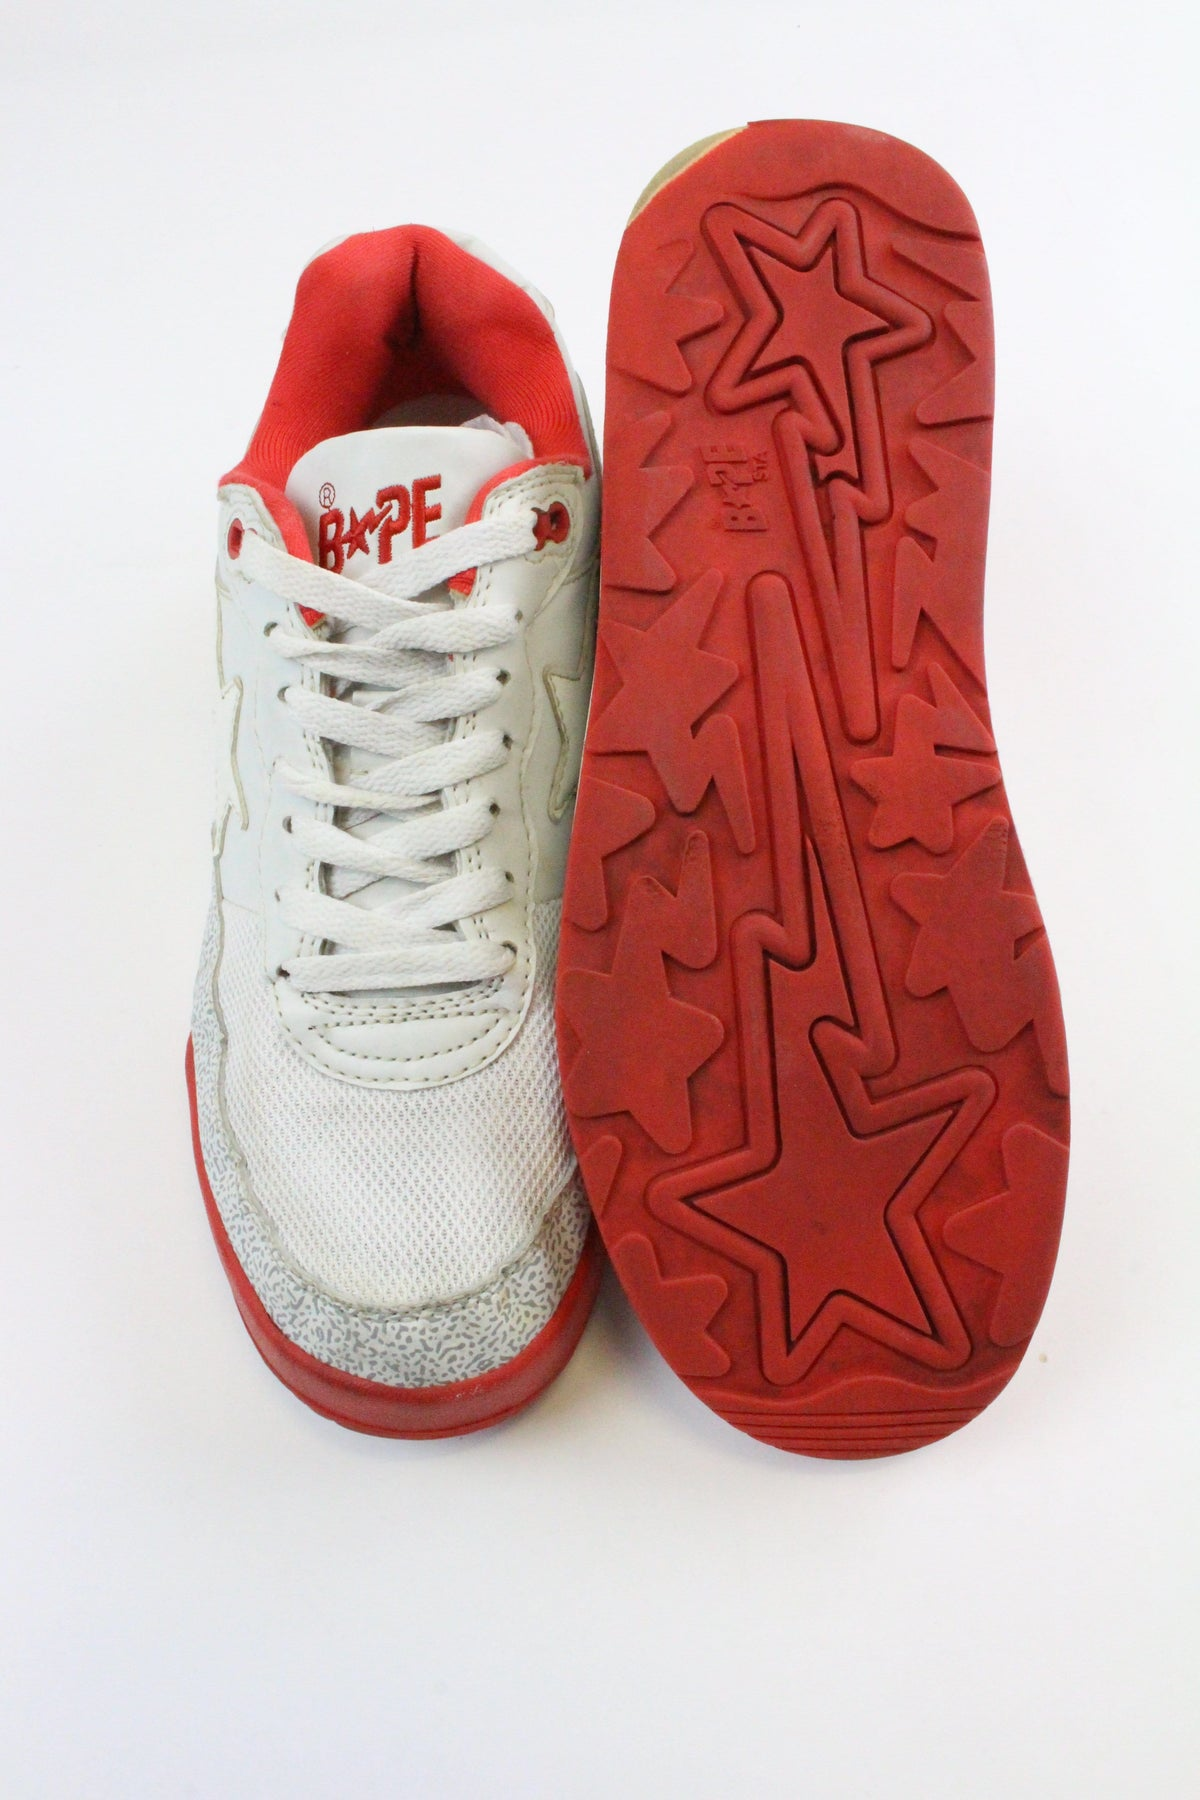 Bape Cement & Red Roadstas - SaruGeneral